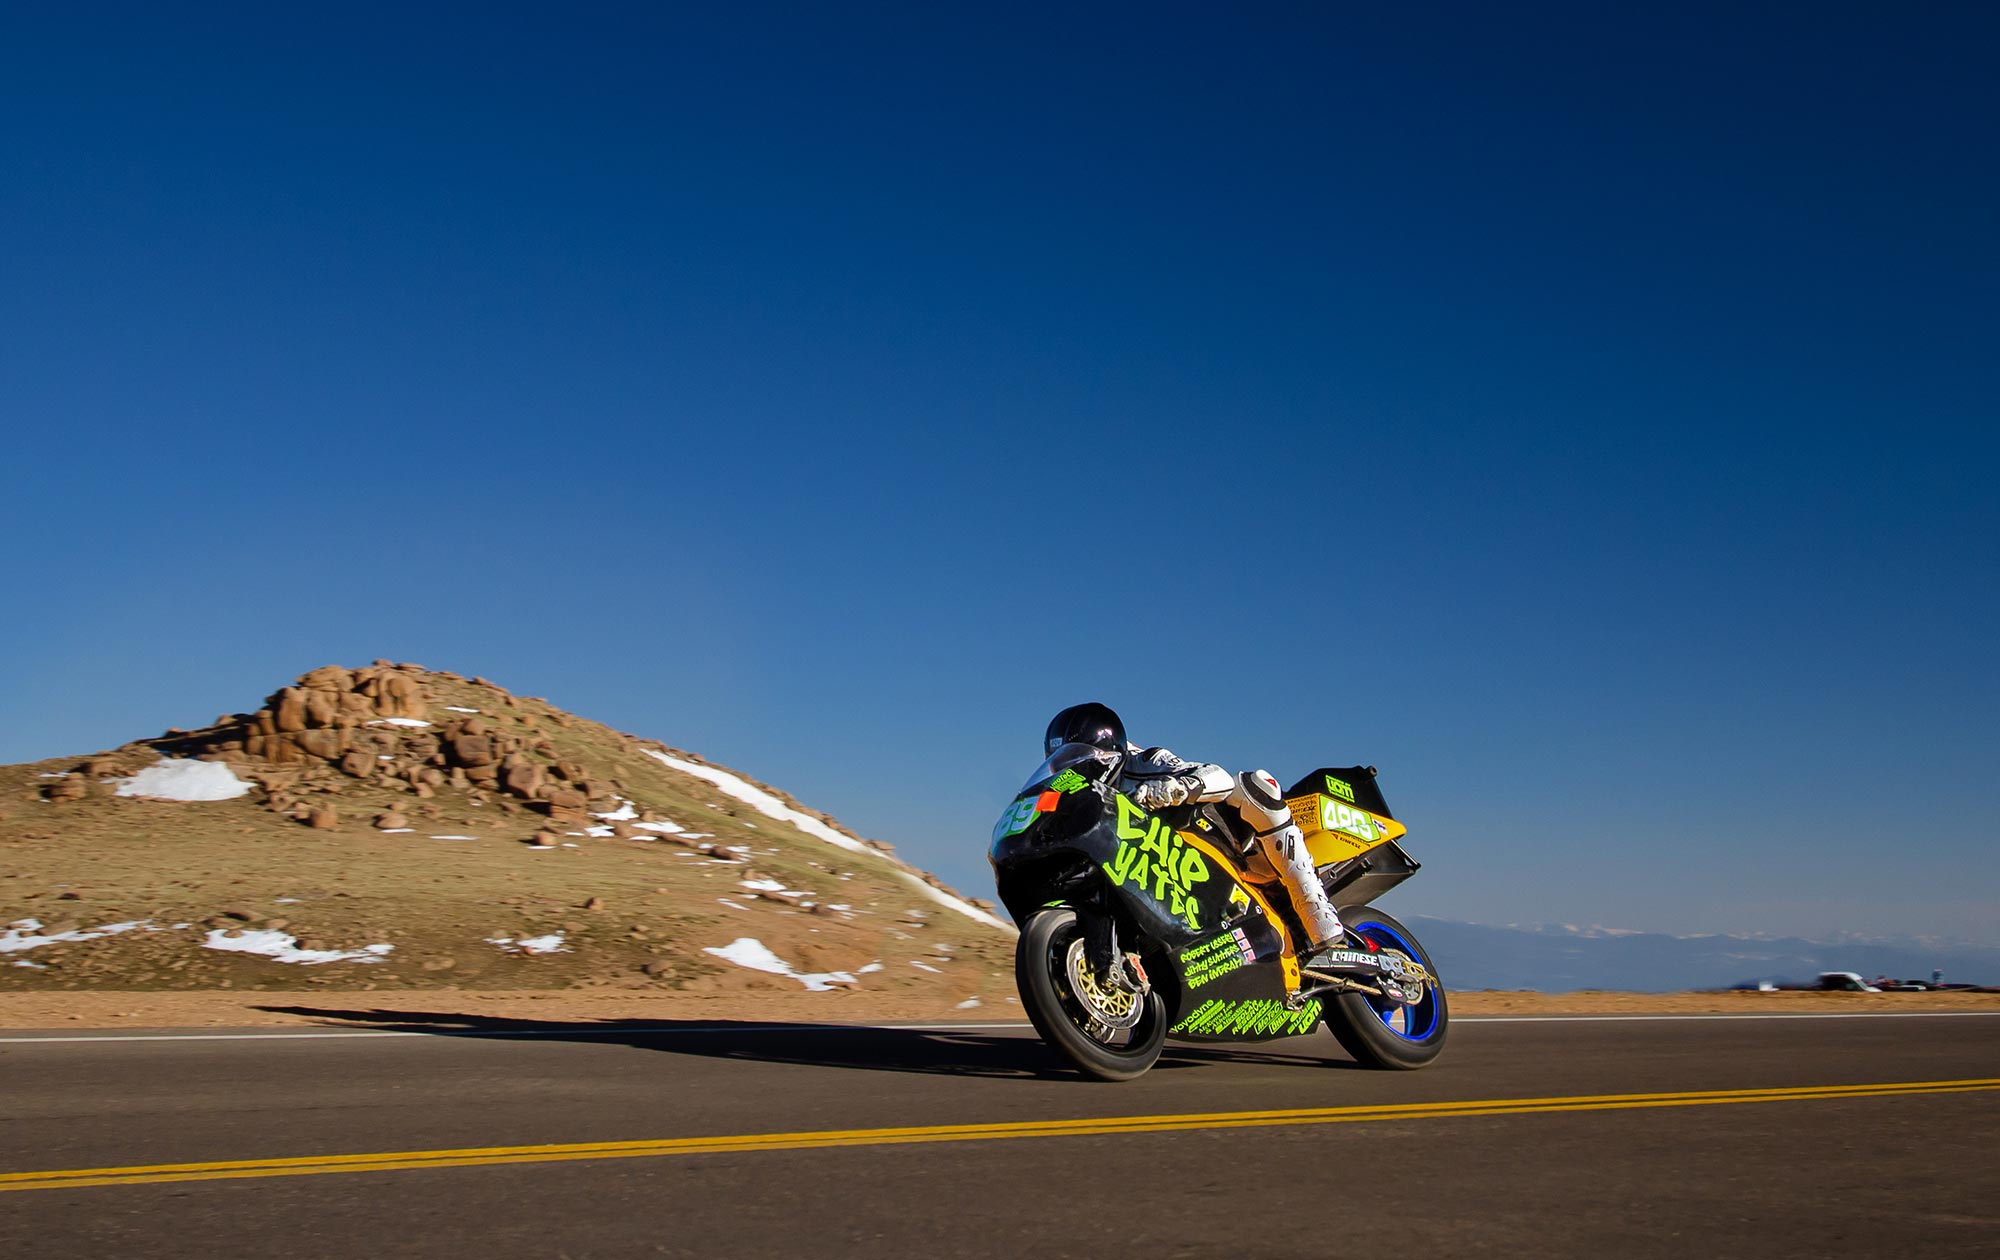 chip yates to defend electric motorcycle record at pikes peak international hill climb with. Black Bedroom Furniture Sets. Home Design Ideas